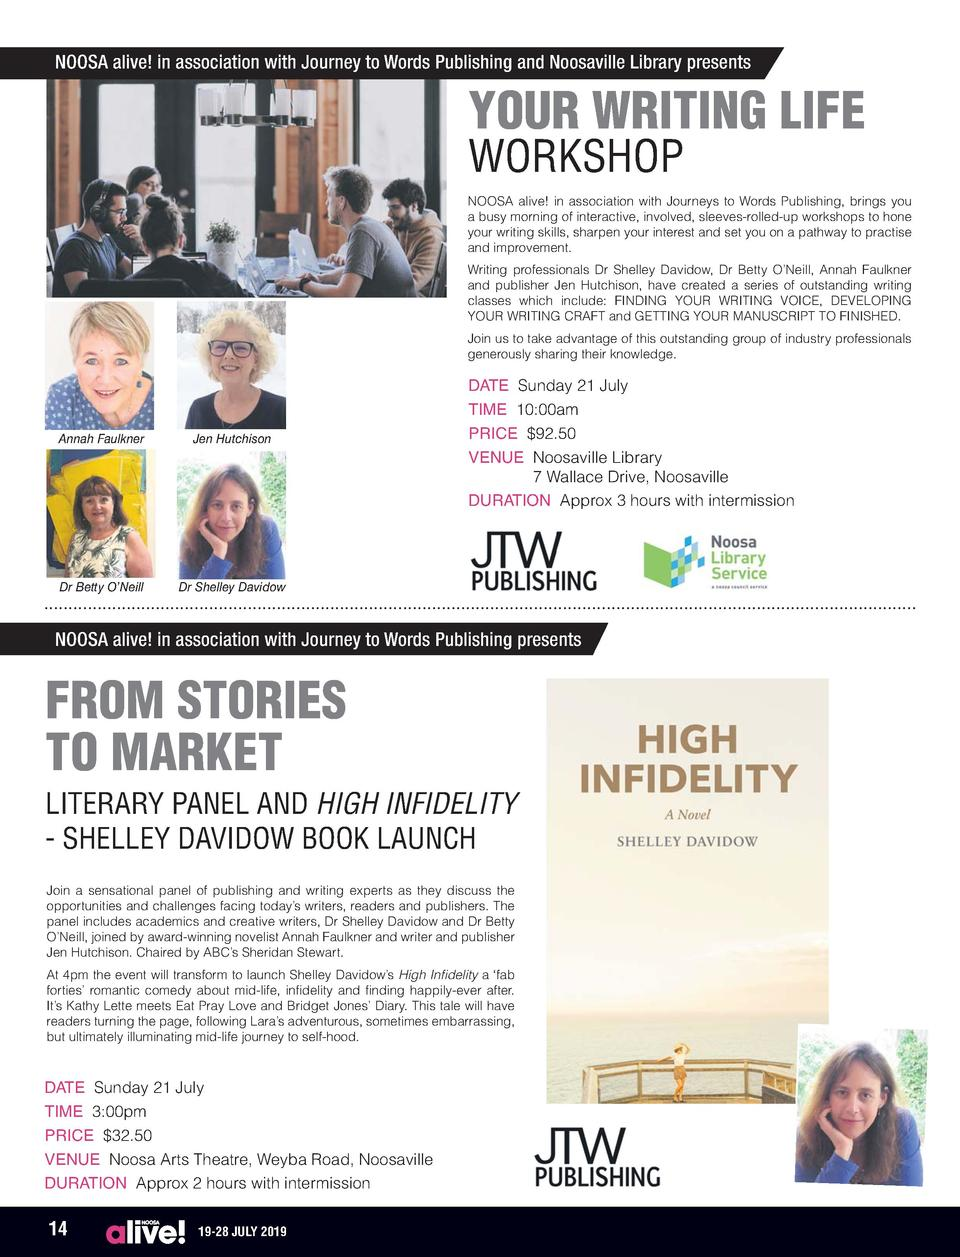 NOOSA alive  in association with Journey to Words Publishing and Noosaville Library presents  YOUR WRITING LIFE WORKSHOP  ...